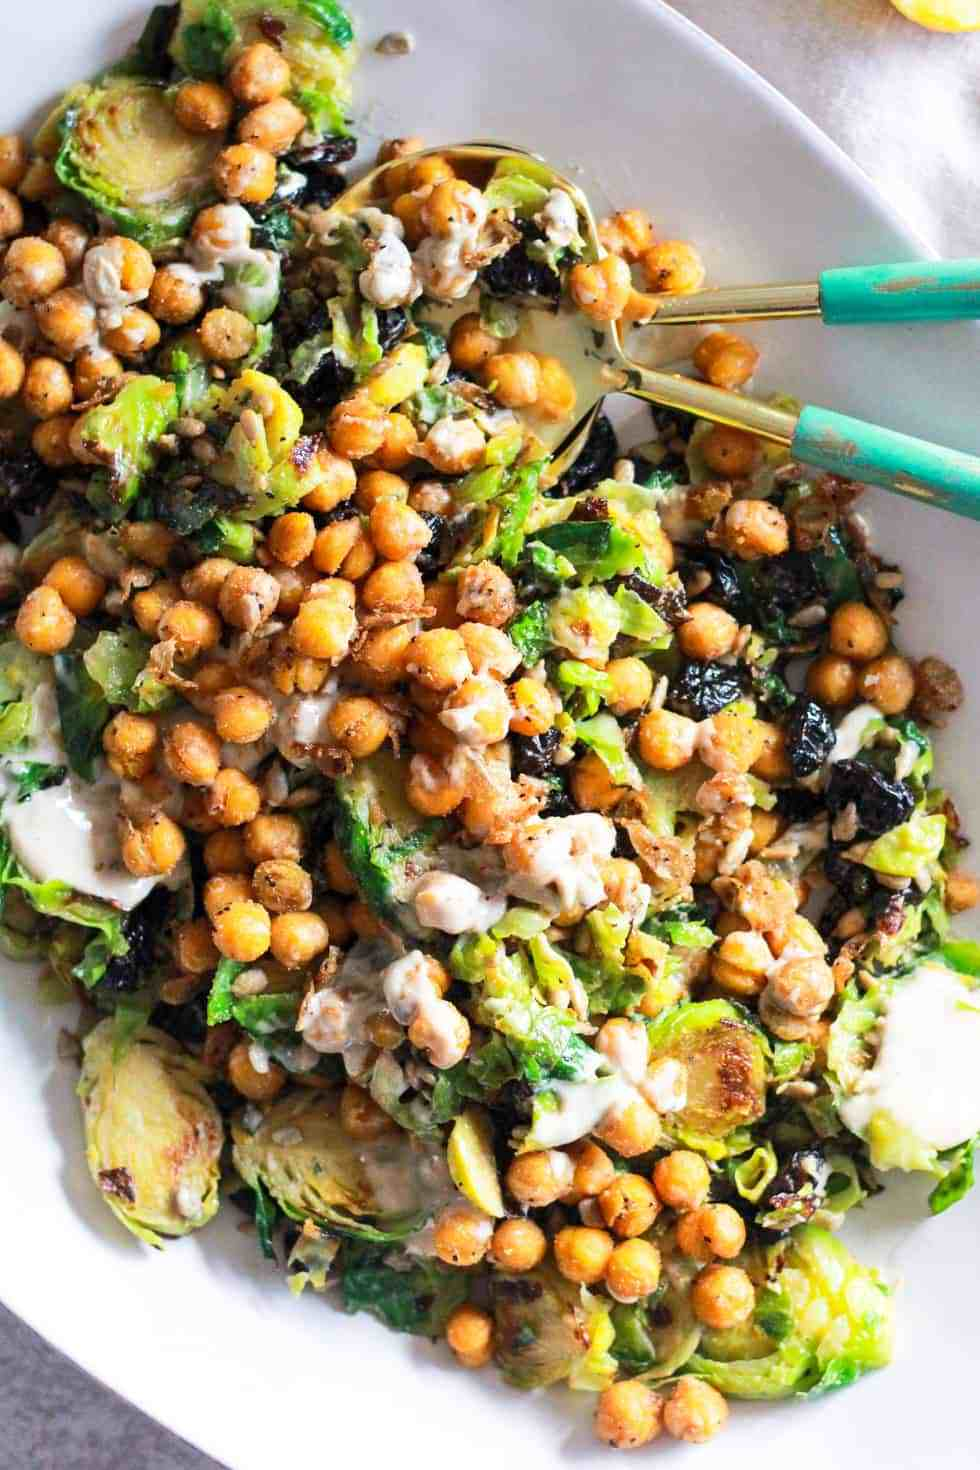 Chickpea salad with brussels sprouts on a white platter is an easy college meal